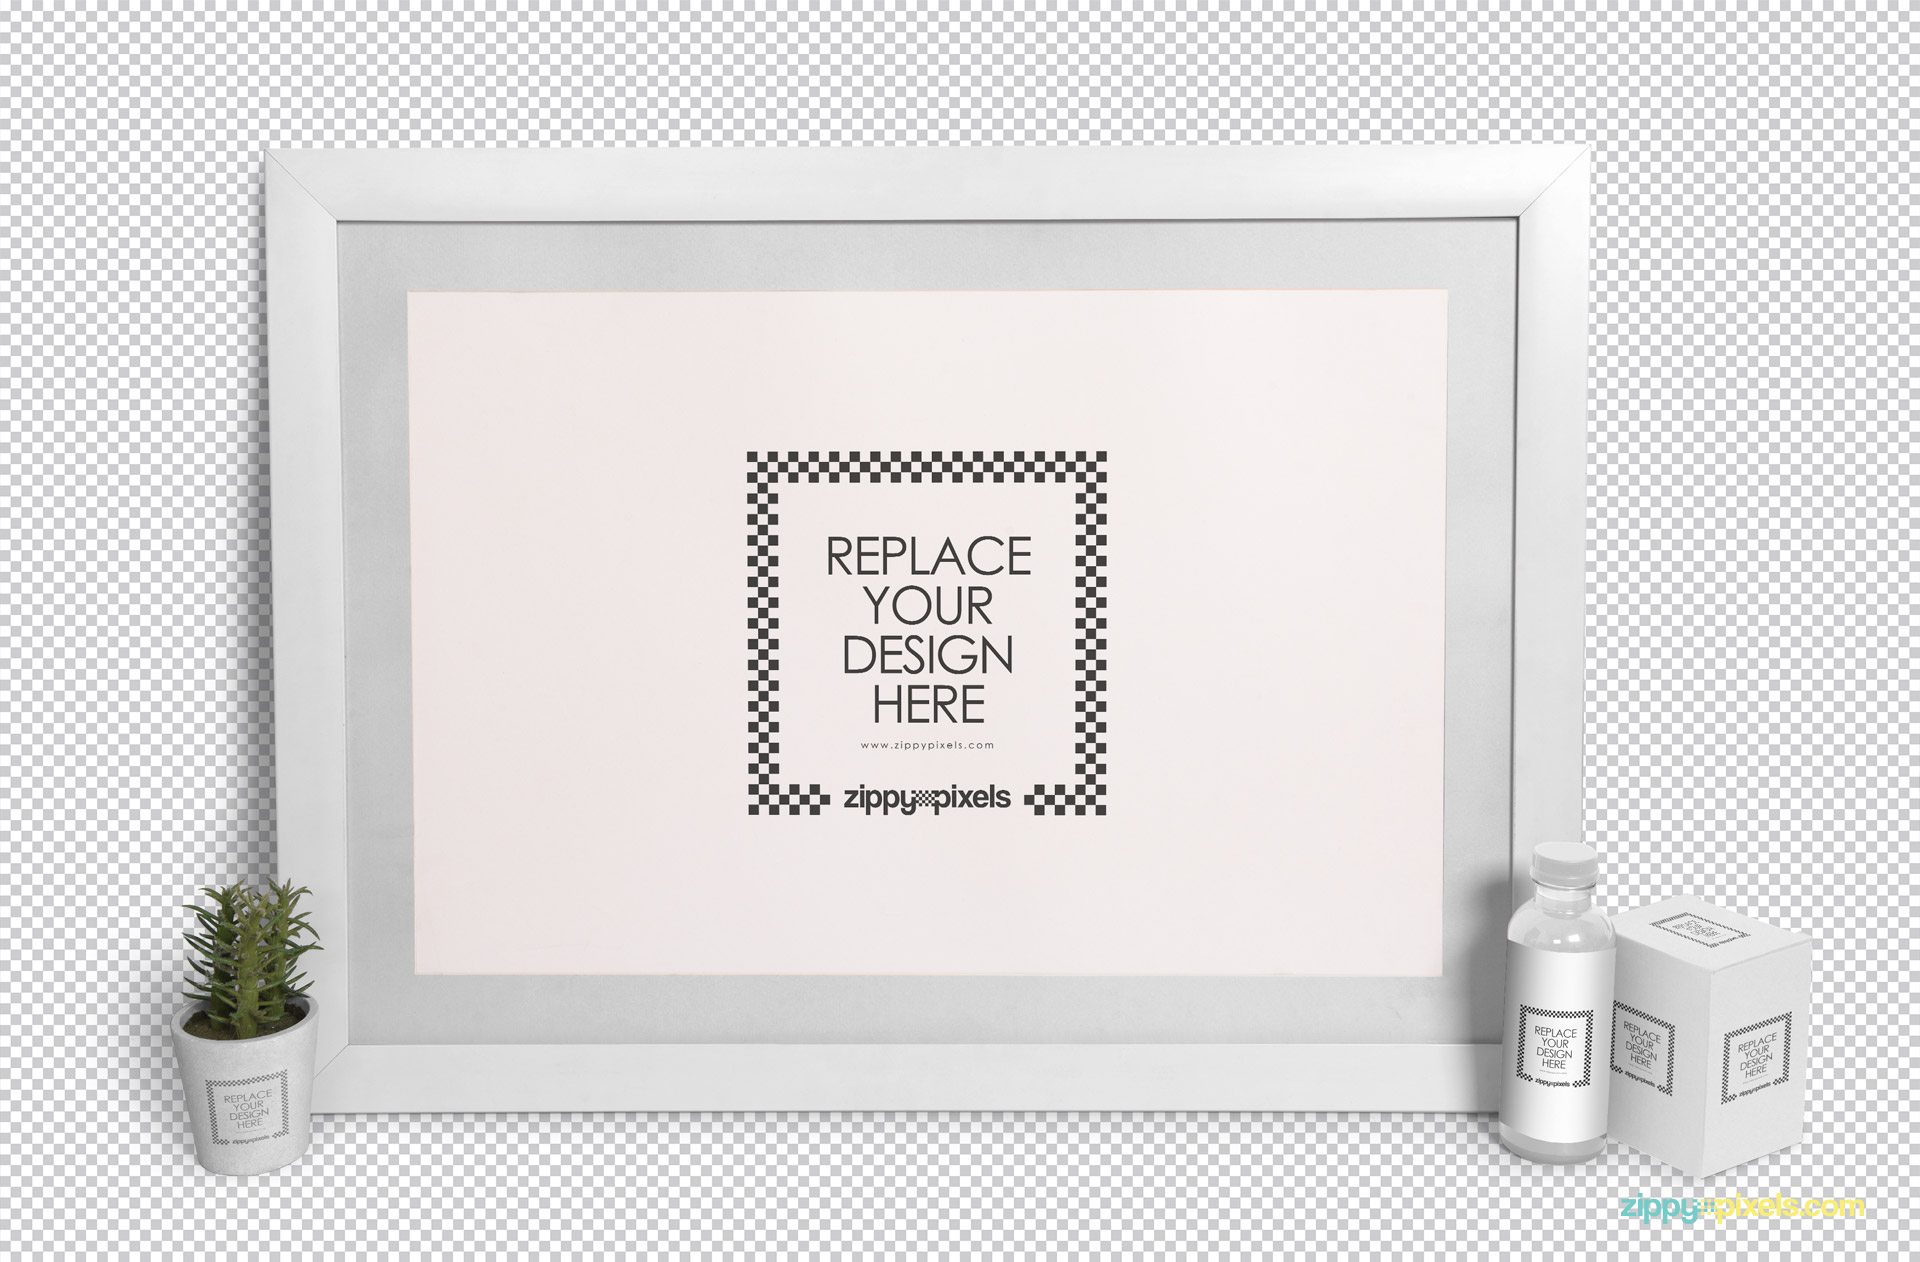 Easy to customize plain frame mockup scene.